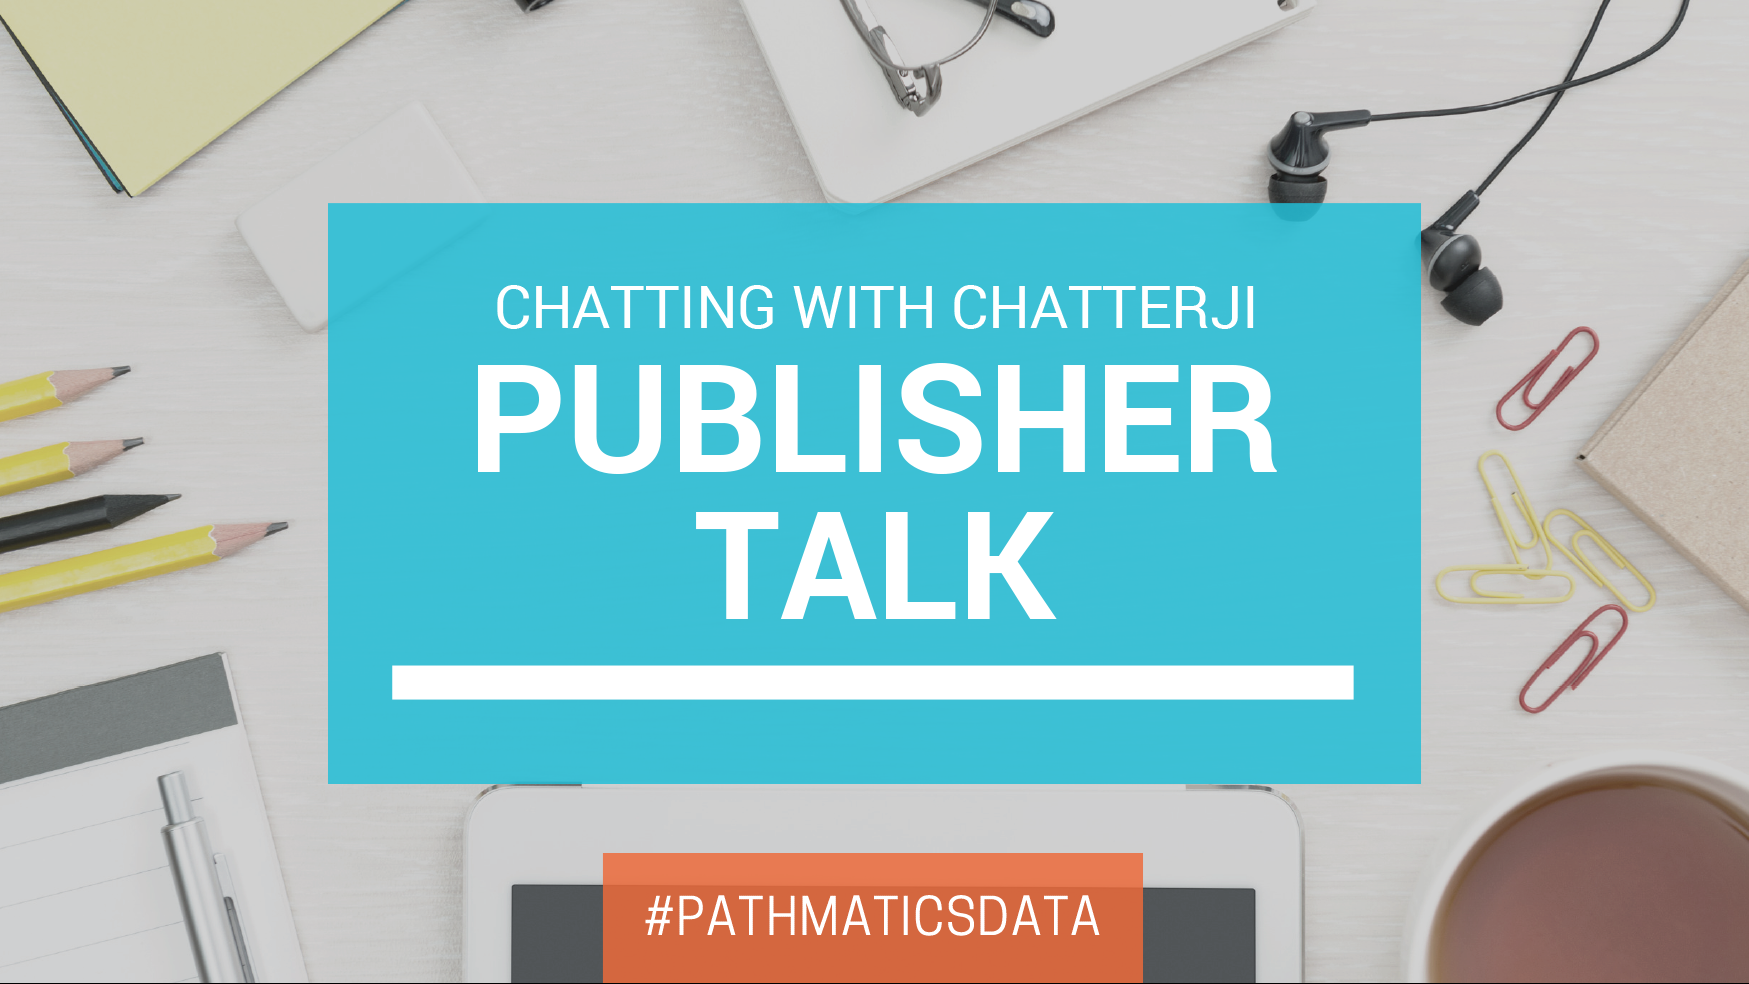 Chatting-with-chatterji-publisher-talk